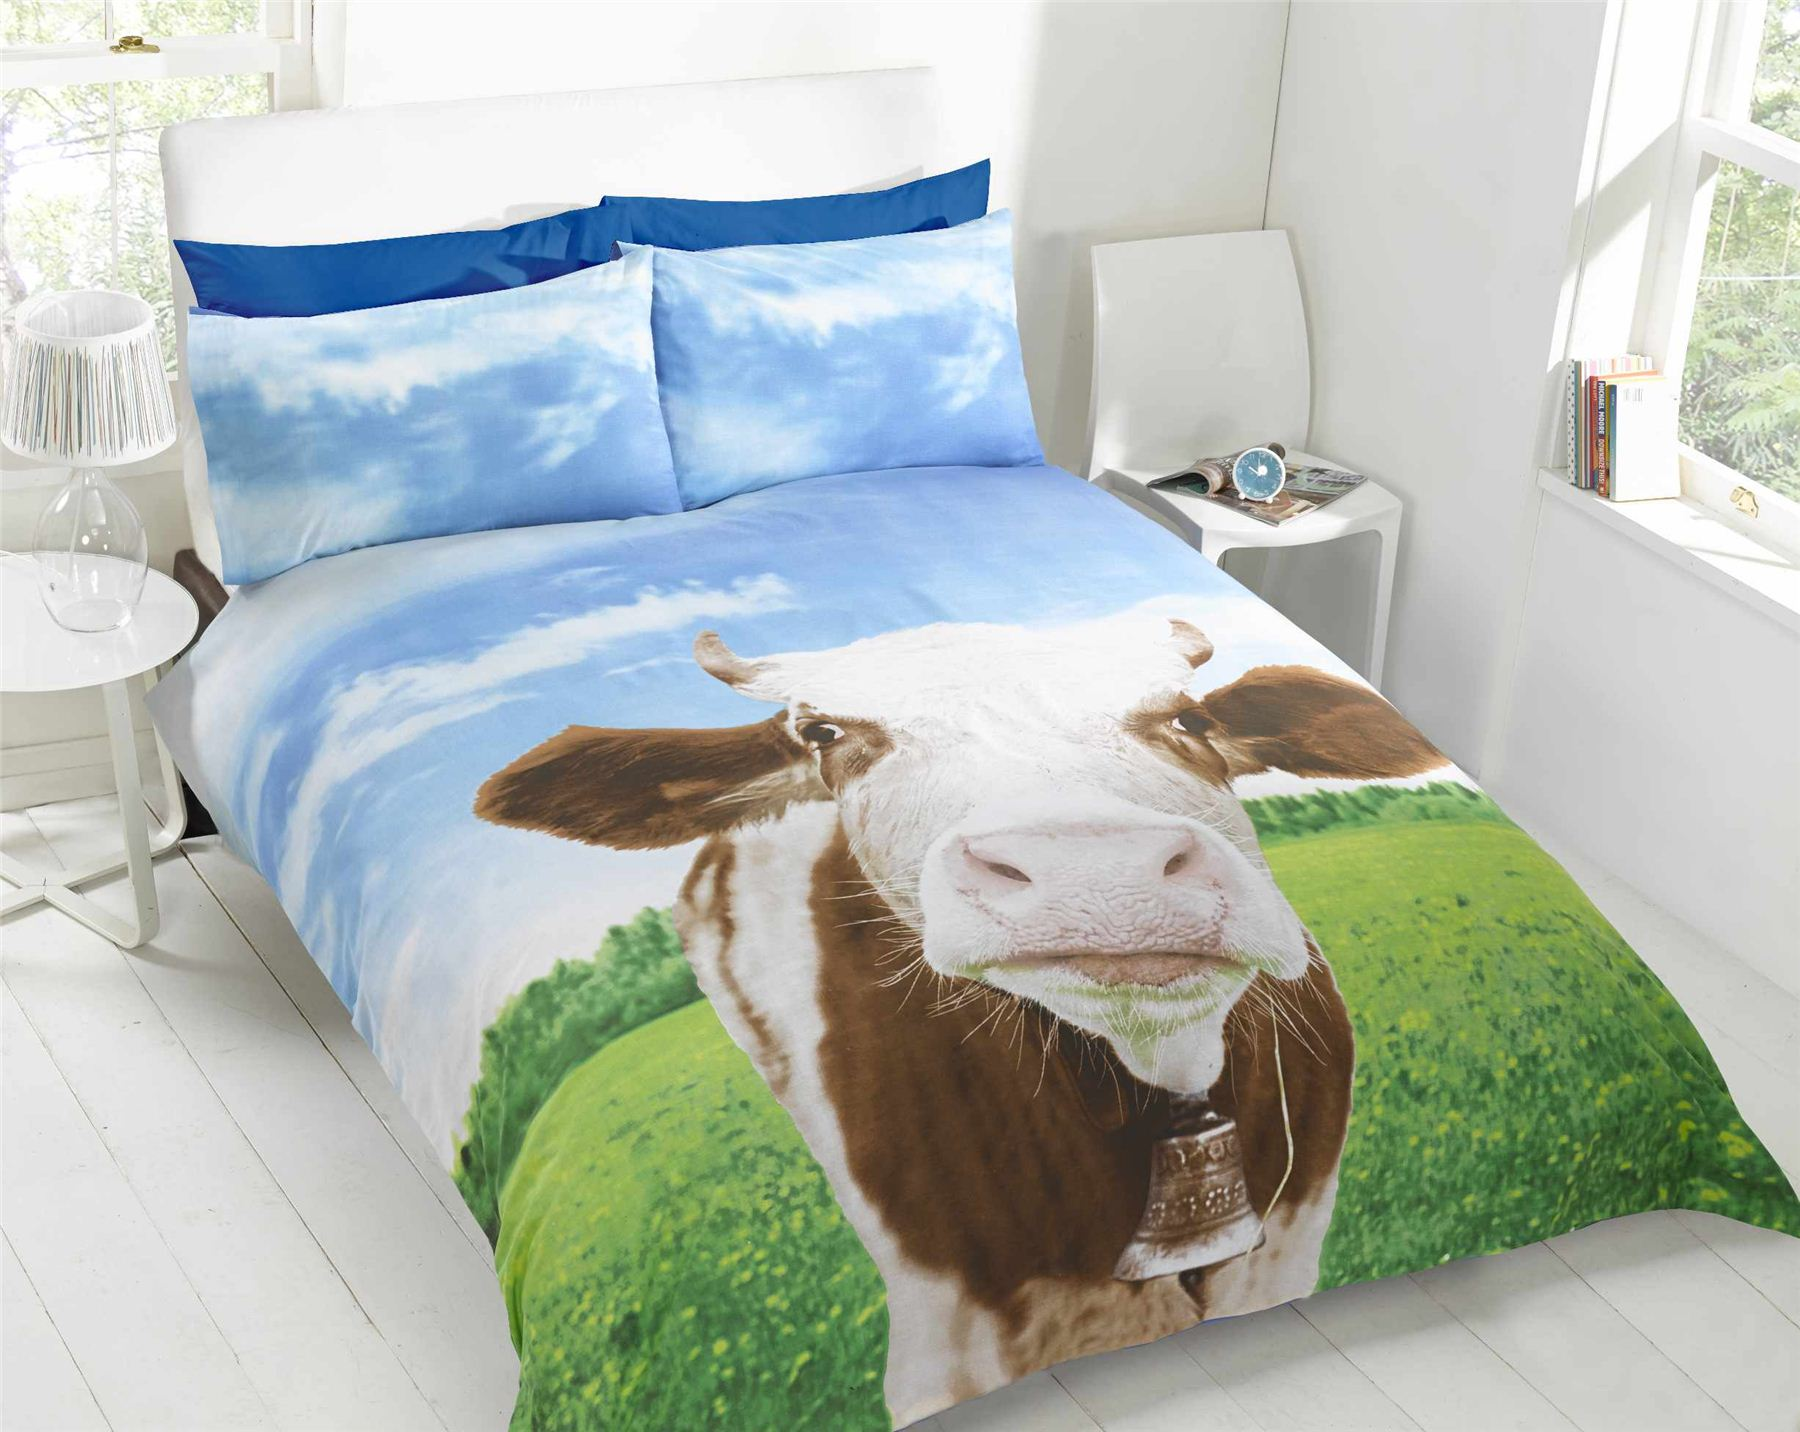 Novelty King Size Bed Sheets